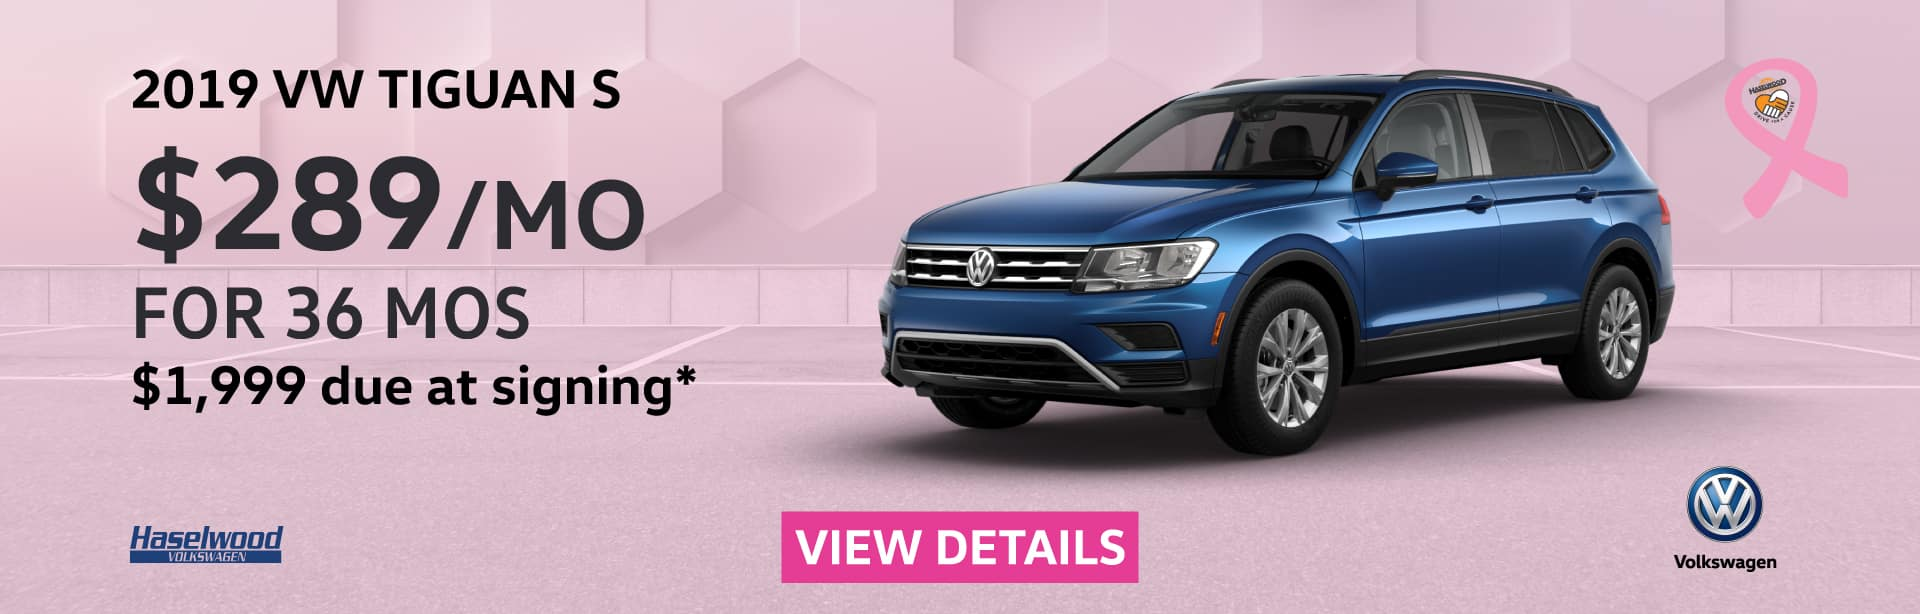 2019 Volkswagen Tiguan S (featured vehicle)  $289/mo. for 36 months $1,999 Due at Signing    * Offer valid on 2019 Volkswagen Tiguan S. $289 per mo. for 36 months. Lease with $1,999 due at signing; includes a $595 acquisition fee, lease through Volkswagen Credit. No security deposit required. Valid on VIN: 3VV0B7AXXKM180233.For highly qualified customers on approved top tier credit through Volkswagen Credit. Lessee responsible for maintenance, excessive wear/tear and 20¢/mi over 10K mi/yr. Excludes state and local taxes, tags, registration and title, insurance and dealer charges. Subject to credit approval. 36 monthly payments required. Monthly lease payment based on MSRP of $26,860 and destination charges less a suggested dealer contribution resulting in a Gross capitalized cost of $26,394. Cap cost reduction: $466. A negotiable dealer documentary service fee of up to $150 may be added to the sale price or capitalized cost. See dealer for complete details and restrictions. 6 years/72,000 miles (whichever occurs first). New Vehicle Limited Warranty on MY2018 and newer VW vehicles, excluding e-Golf. See owner's literature or dealer for warranty exclusions and limitations. Exp. 11/1/2019.